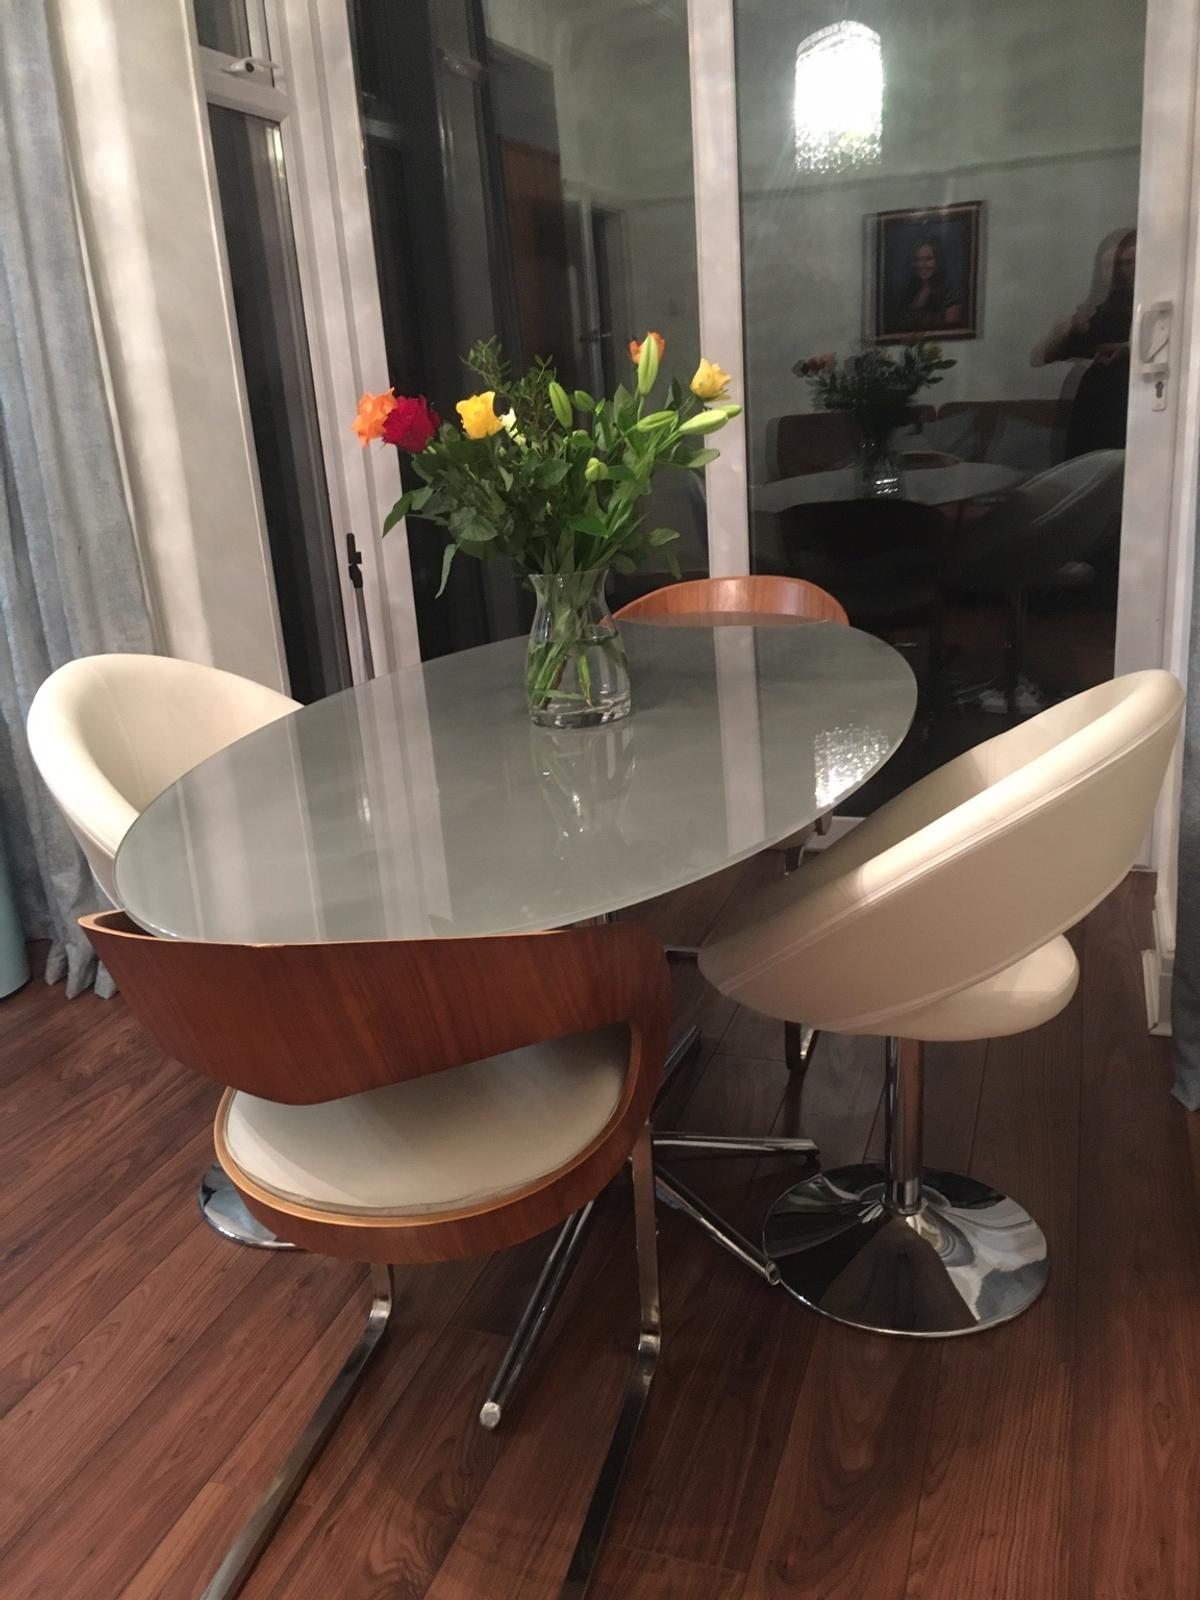 Dwell Oval Glass Dining Table & Chairs in L9 Liverpool für £ 9 ...